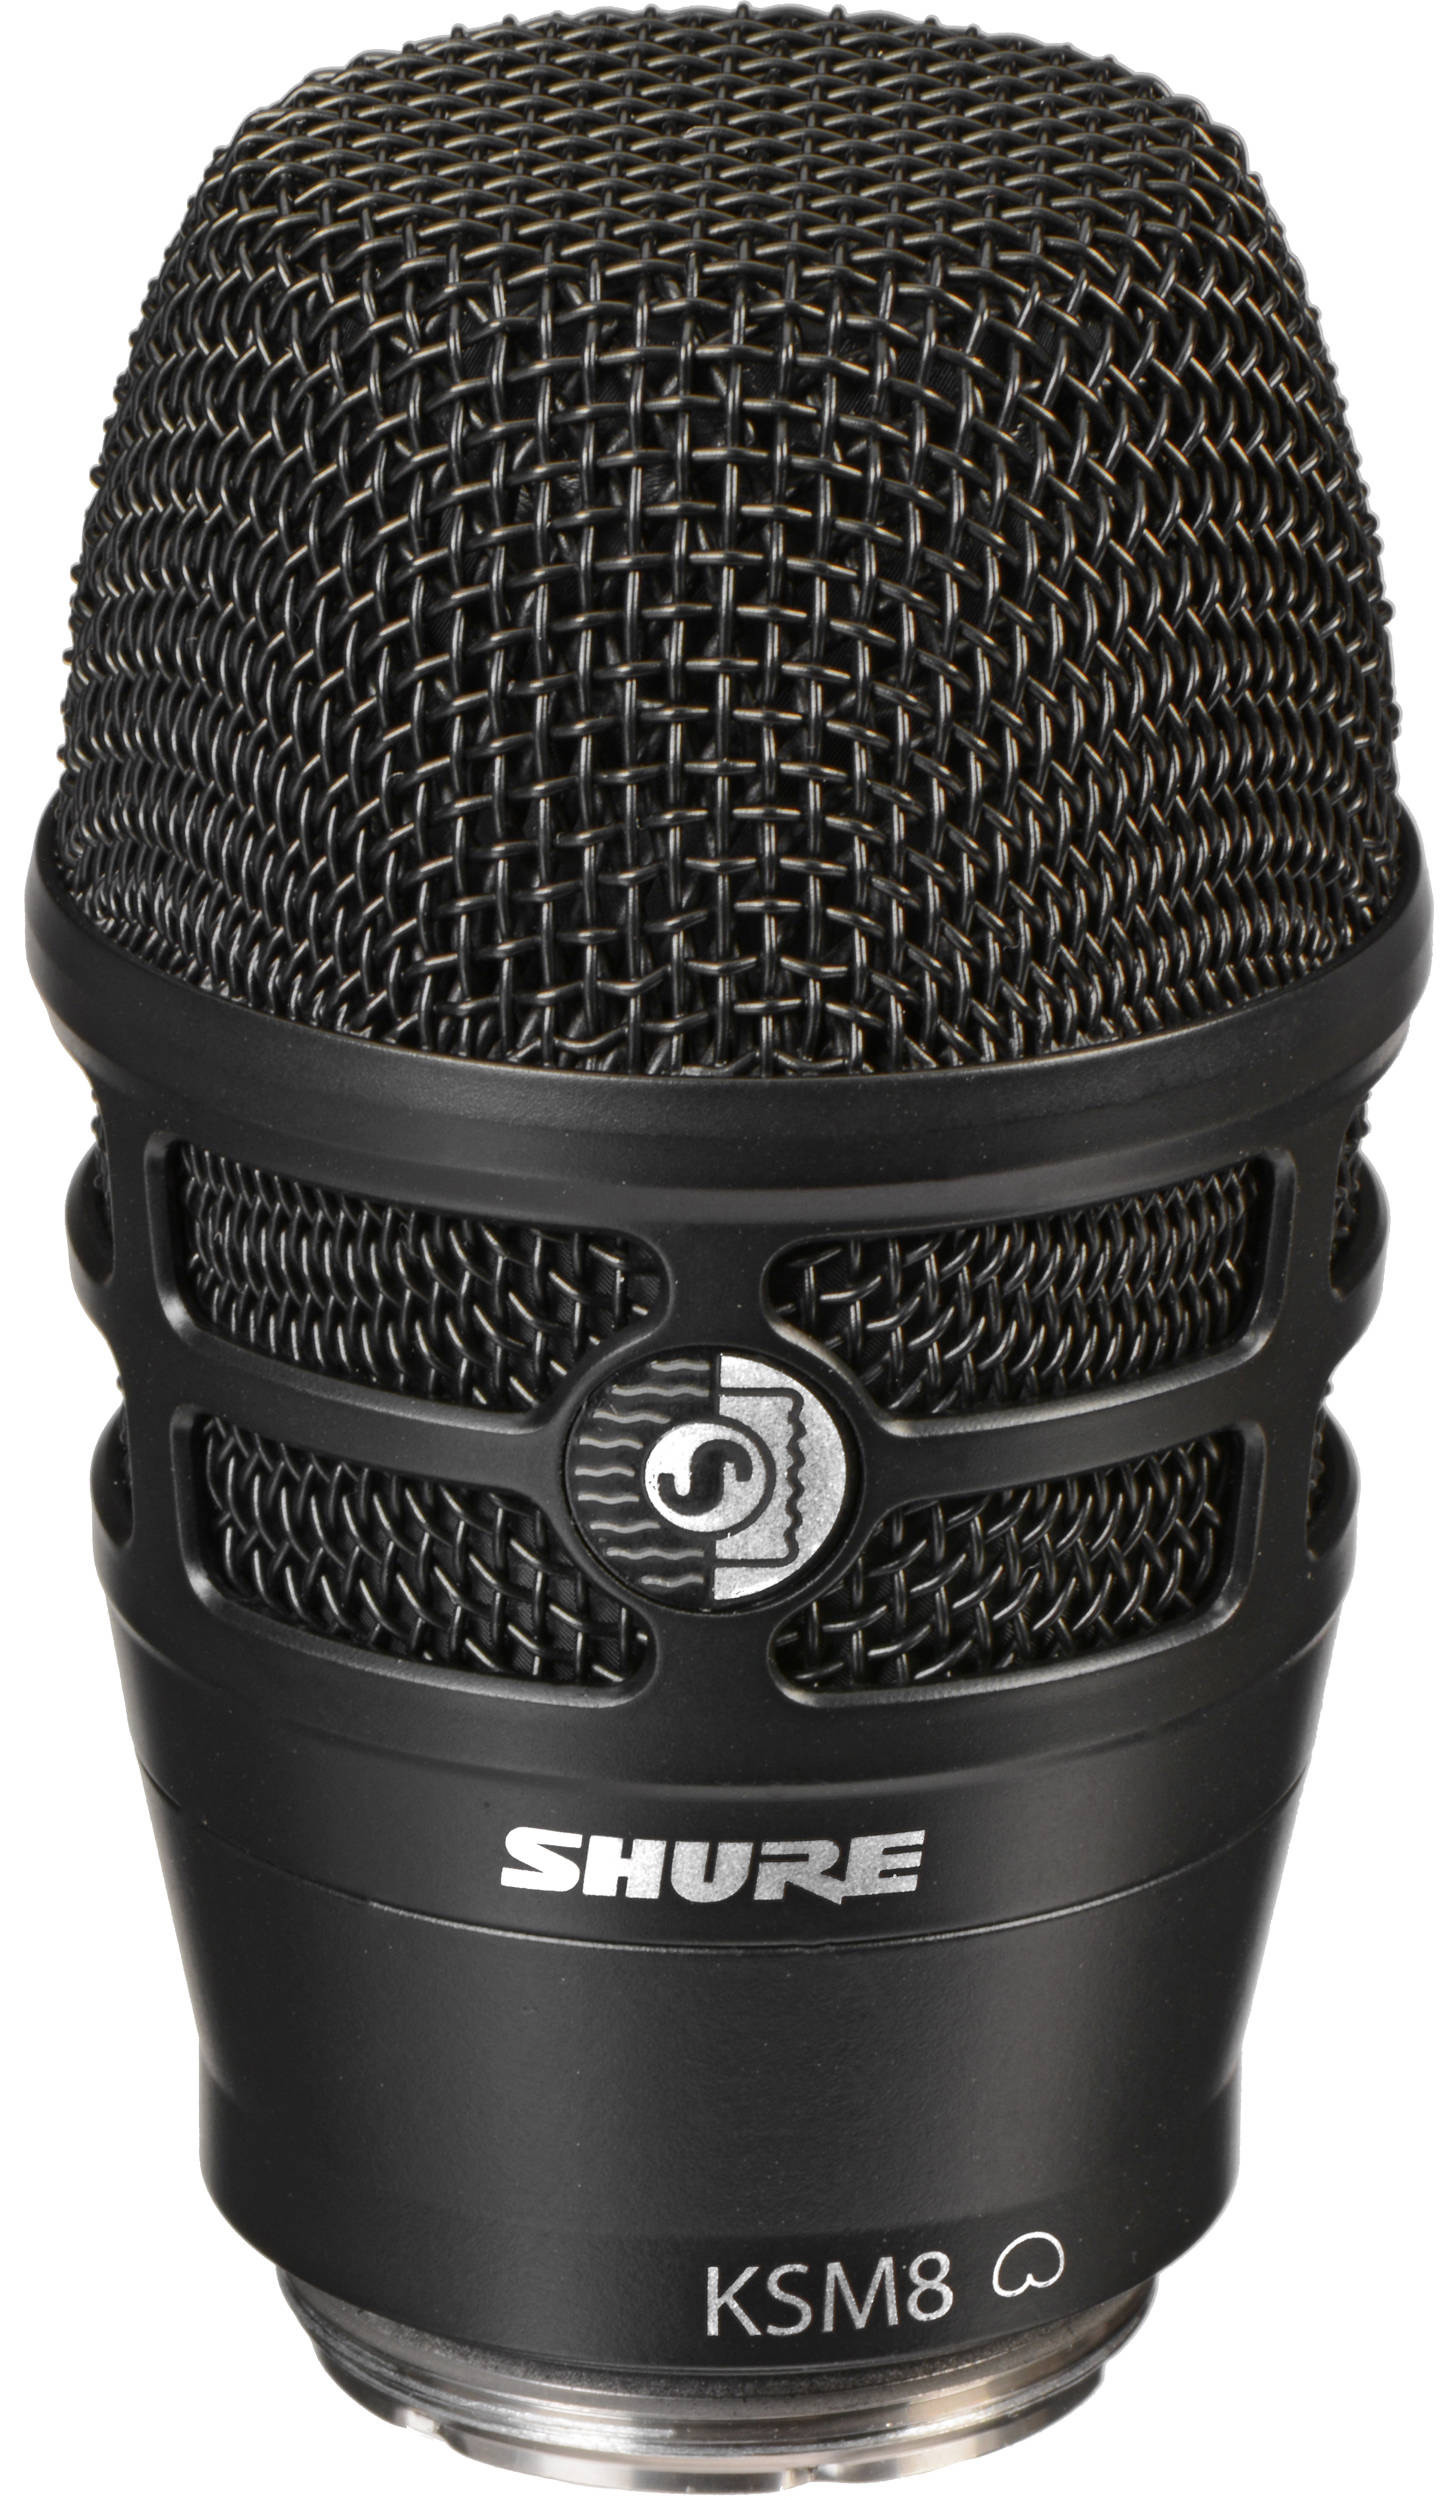 Картридж Shure RPW174 Black KSM8 Wireless Capsule For Black Shure Transmitters